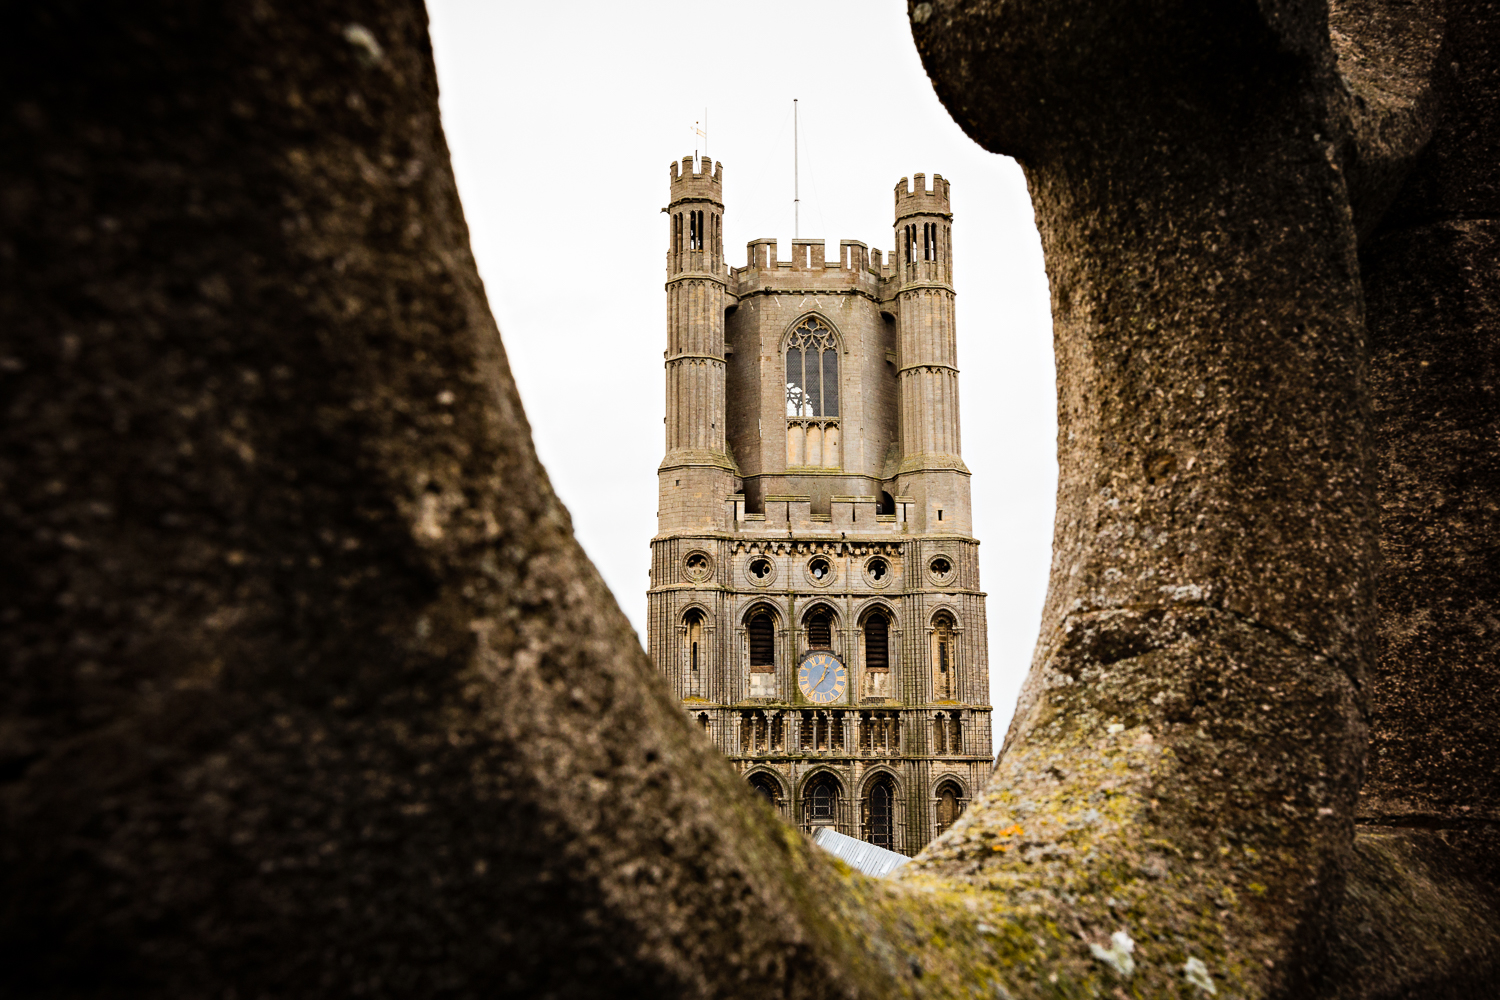 adventure-travel-photography-becky-brockie-cambridgeshire-ely-cathedral.jpg